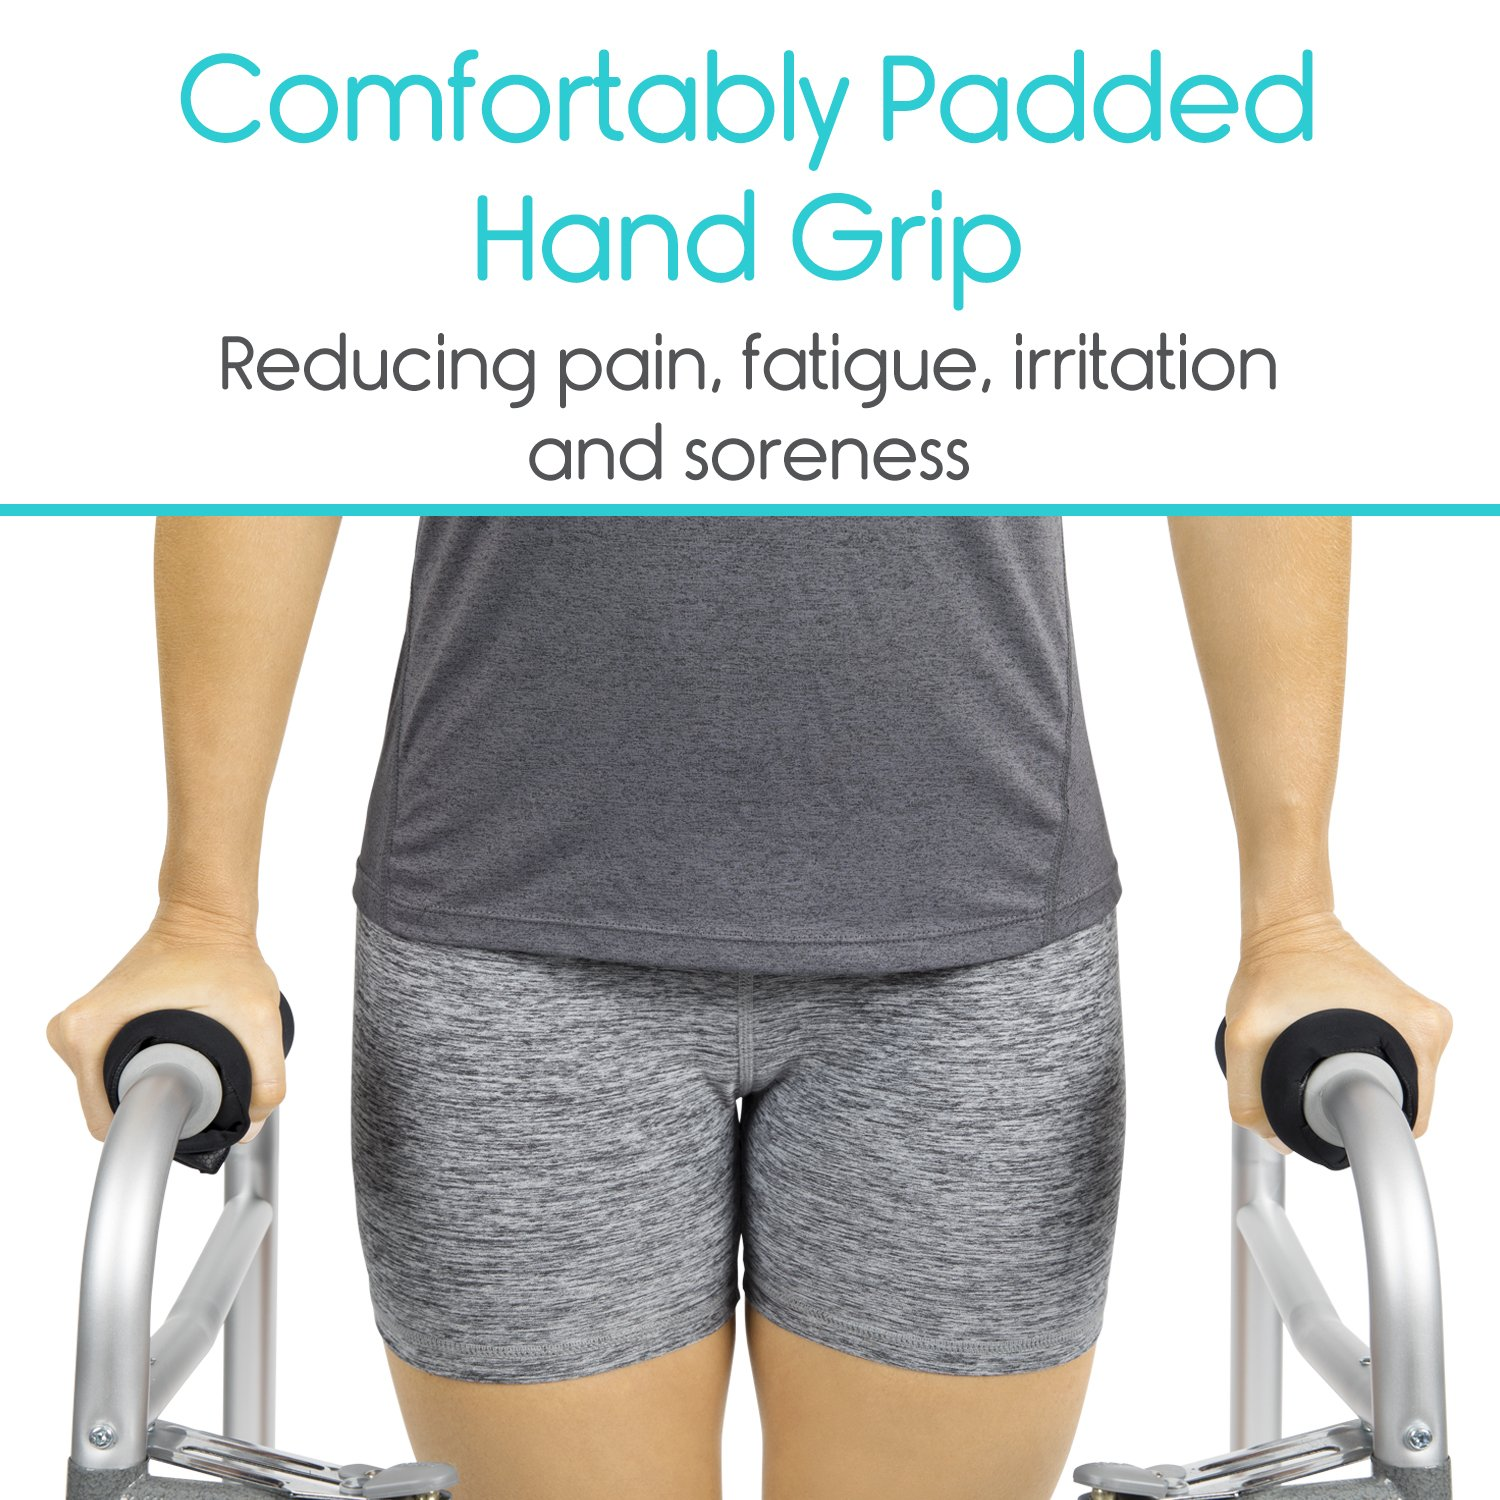 Vive Walker Padded Hand Grip Covers- Soft Cushion Padding Medical Accessories for Folding Rolling Walker, Rollator Handle, Senior, Elderly Grippers - Crutch Handle Pads - Mobility Aid Hand Cushion by Vive (Image #2)